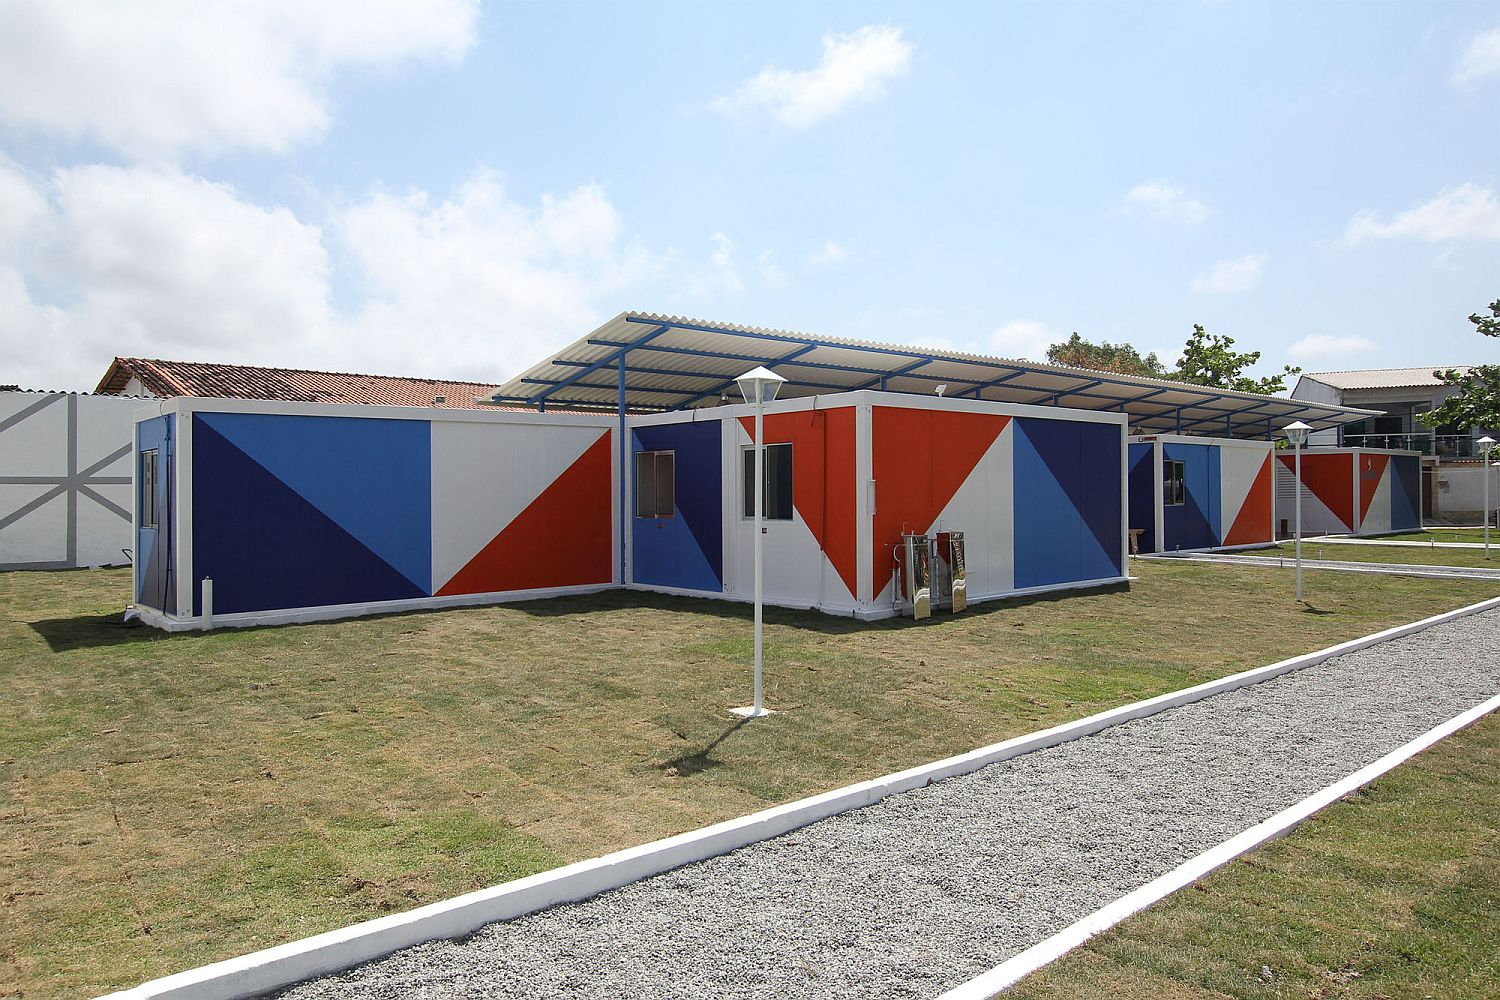 Modular container units create an adaptable and modern setting